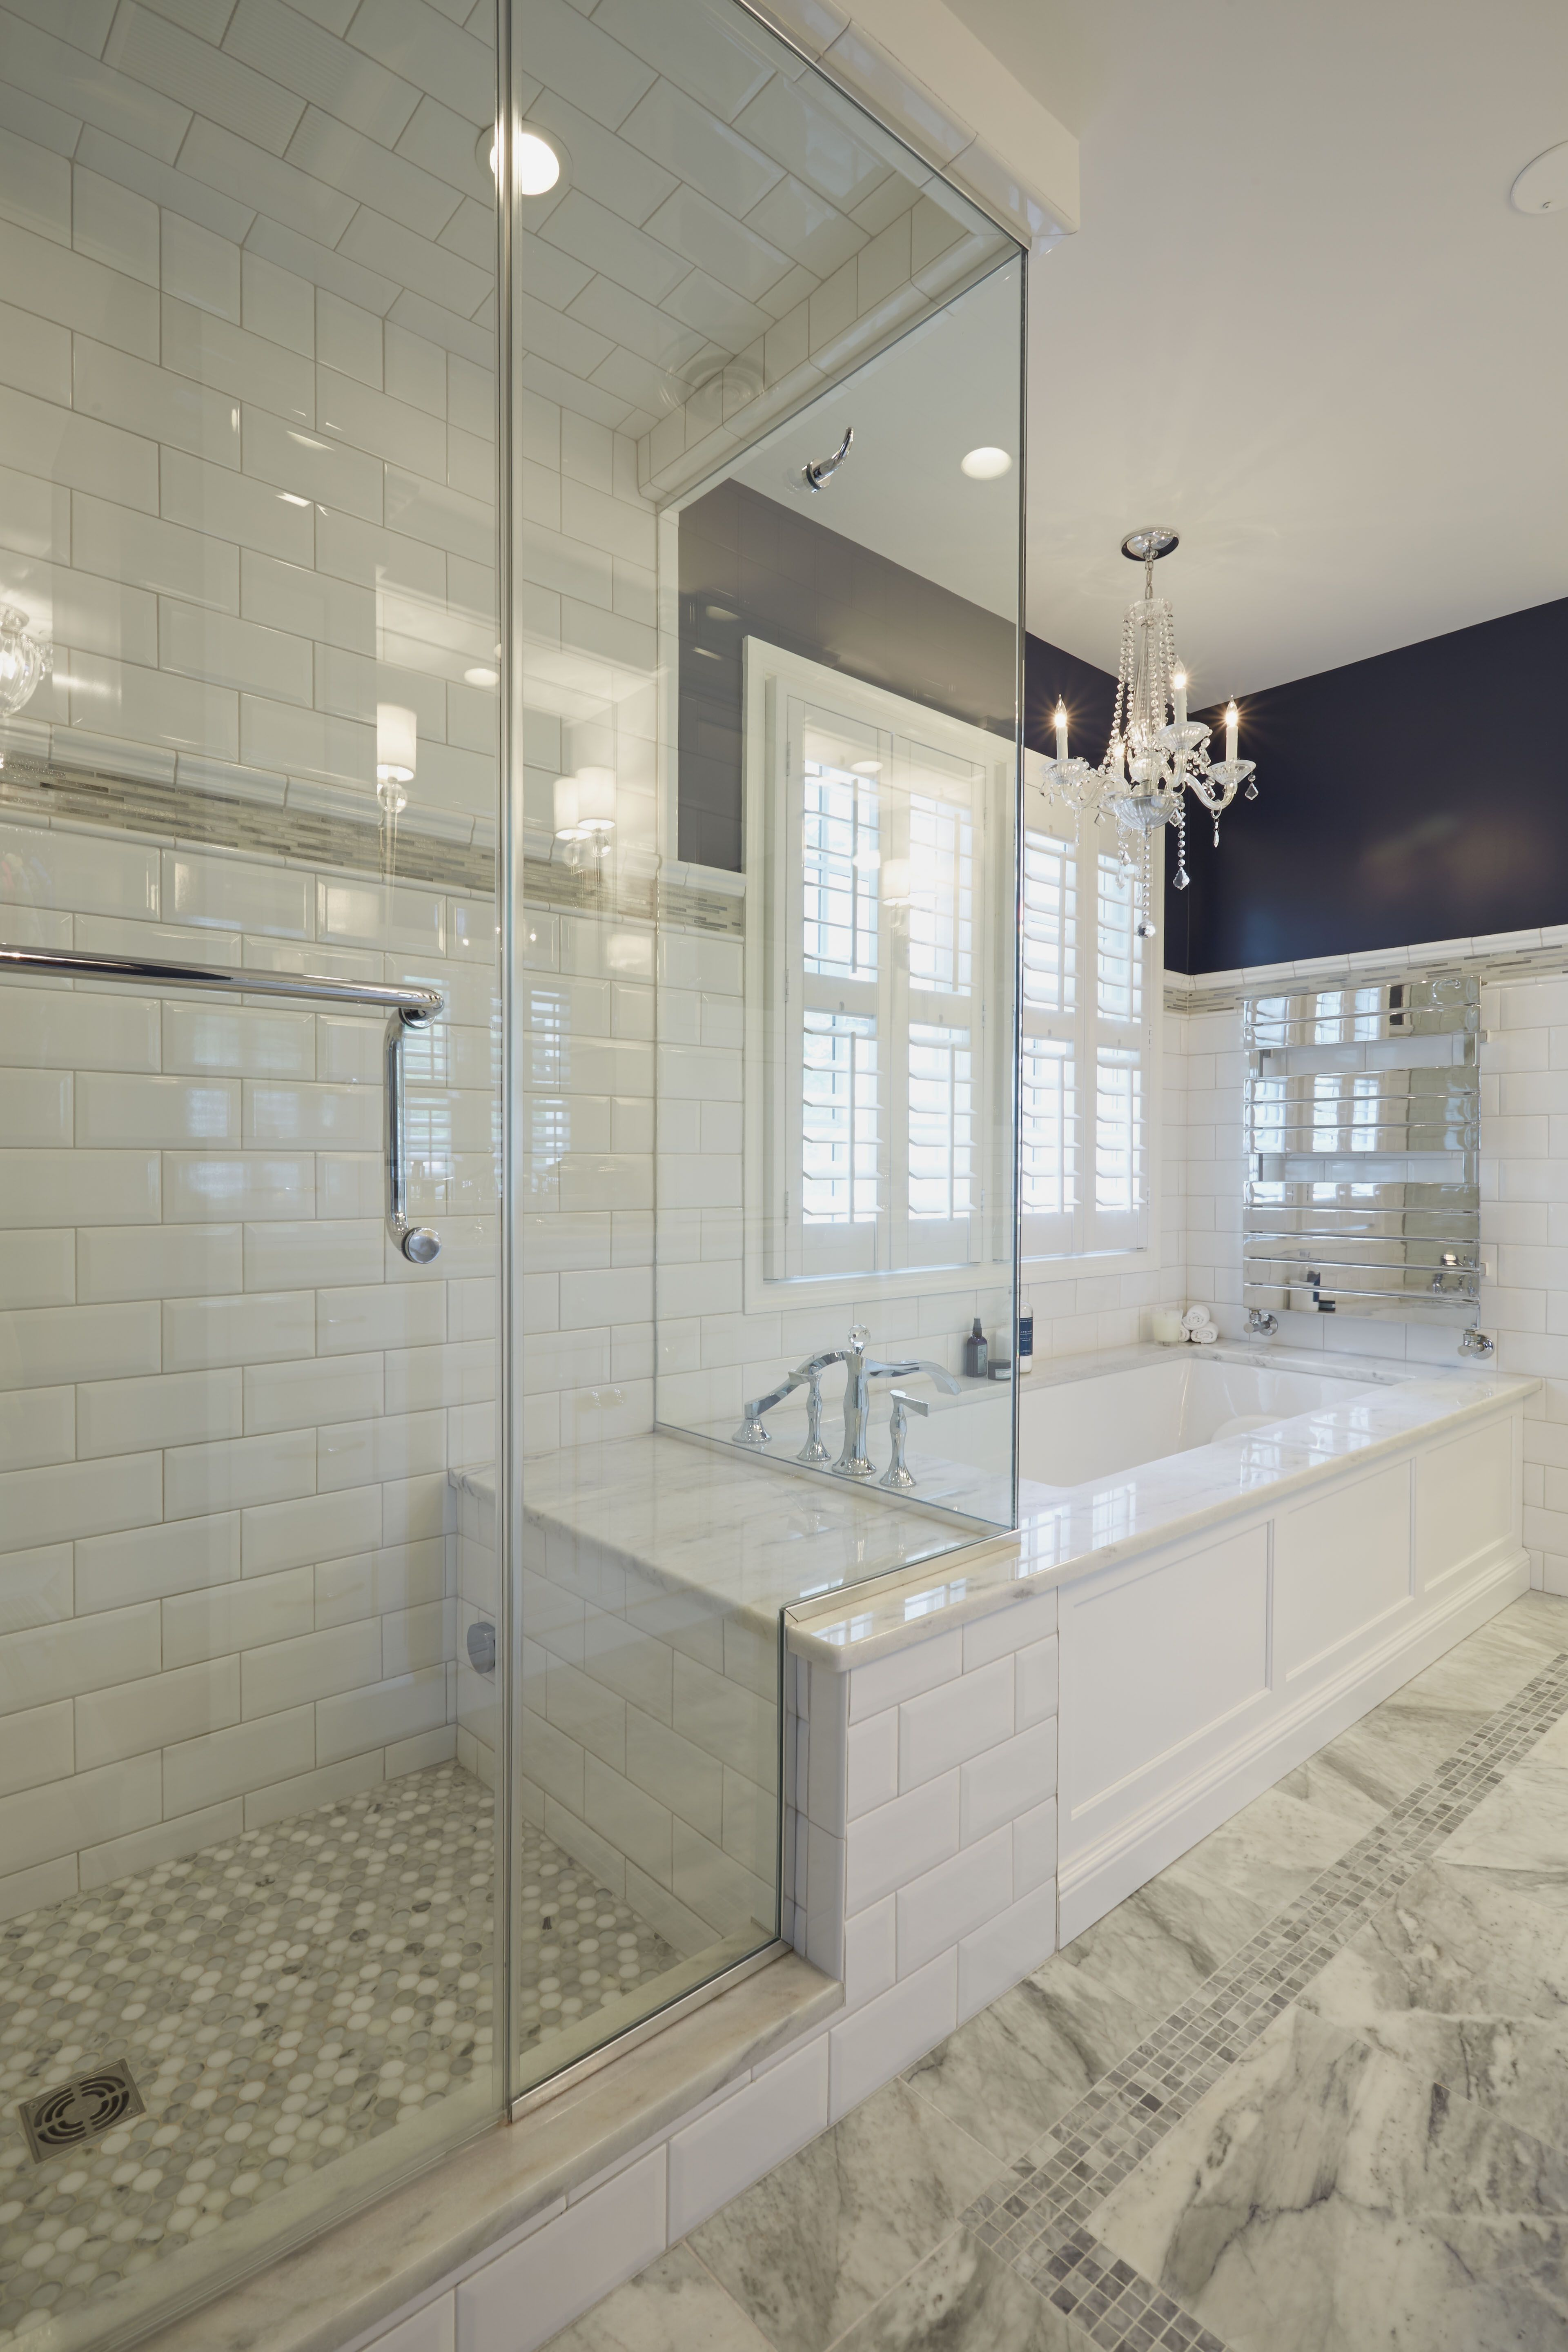 Depiction of Benefits of Glass Enclosed Showers  Bathroom